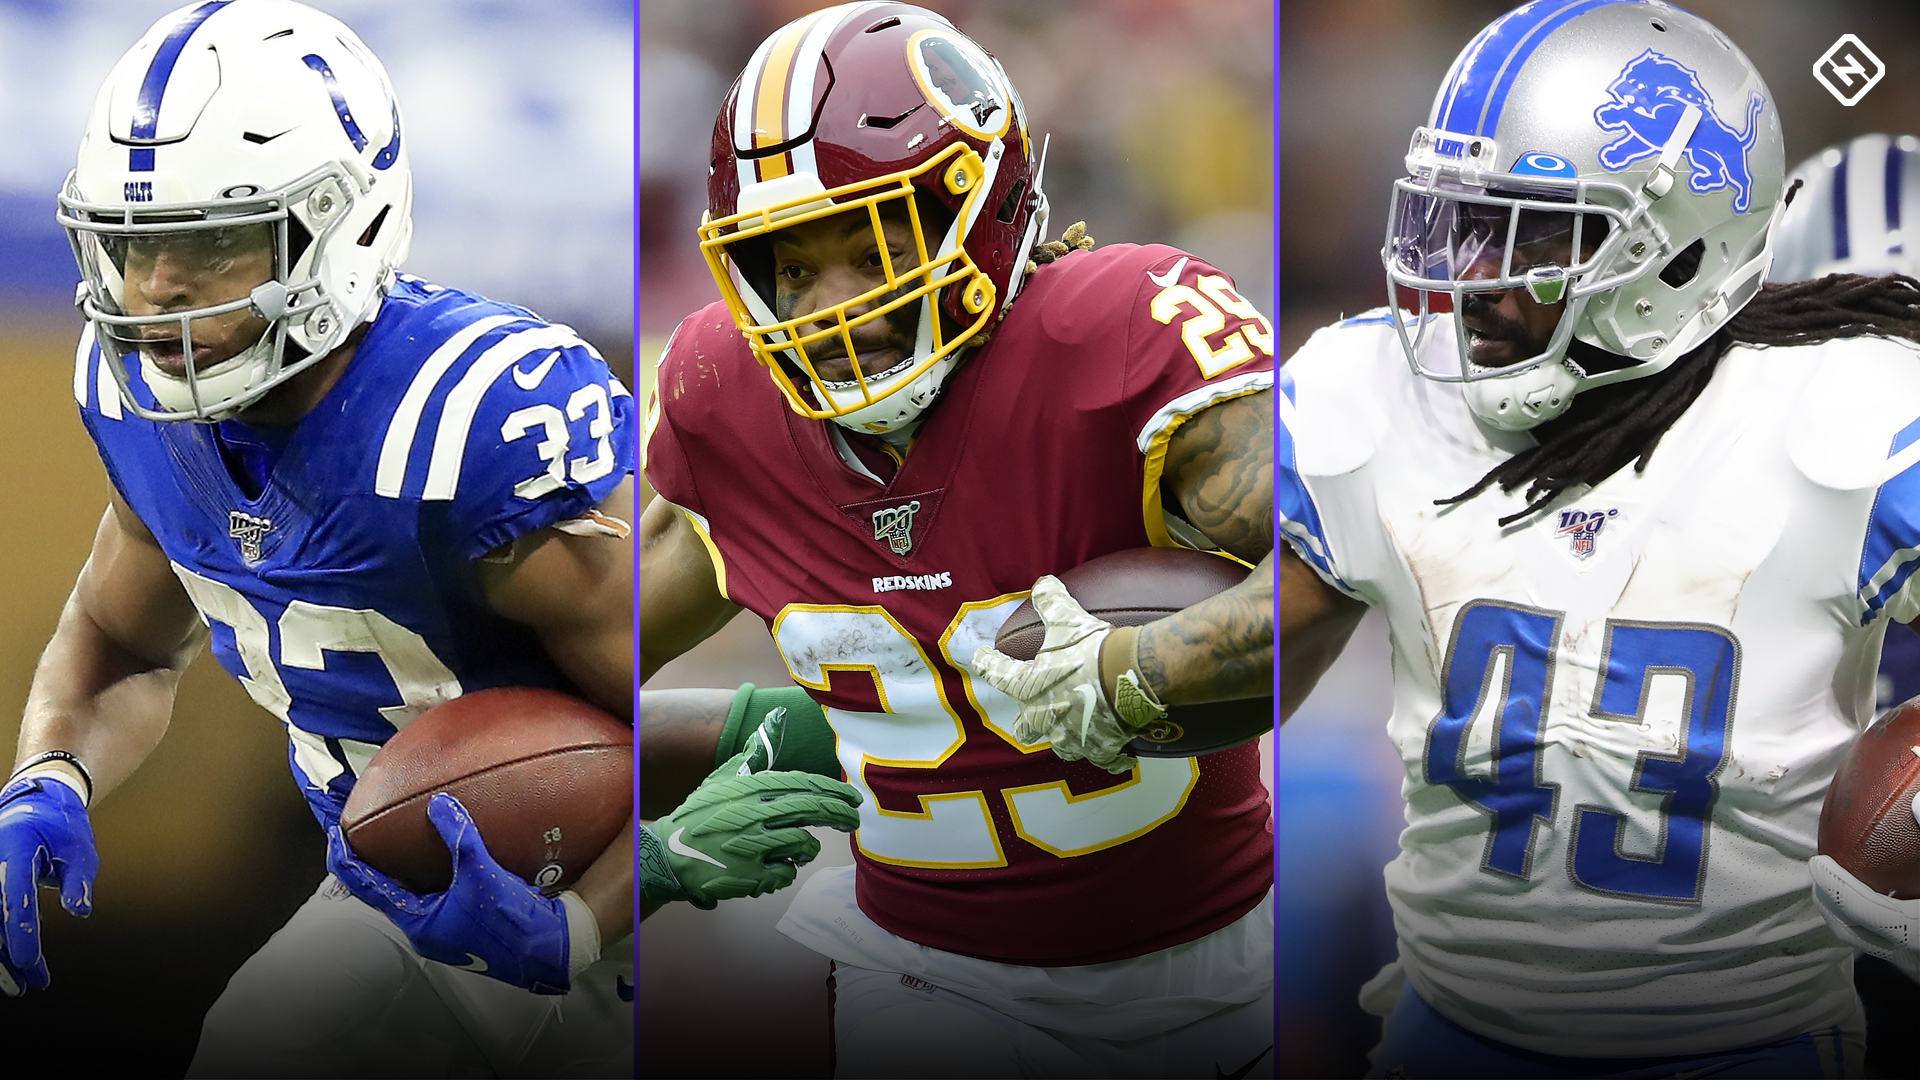 Best Fantasy Week 12 Waiver Pickups: 'Handcuffs' Jonathan Williams, Derrius Guice, Bo Scarbrough break out